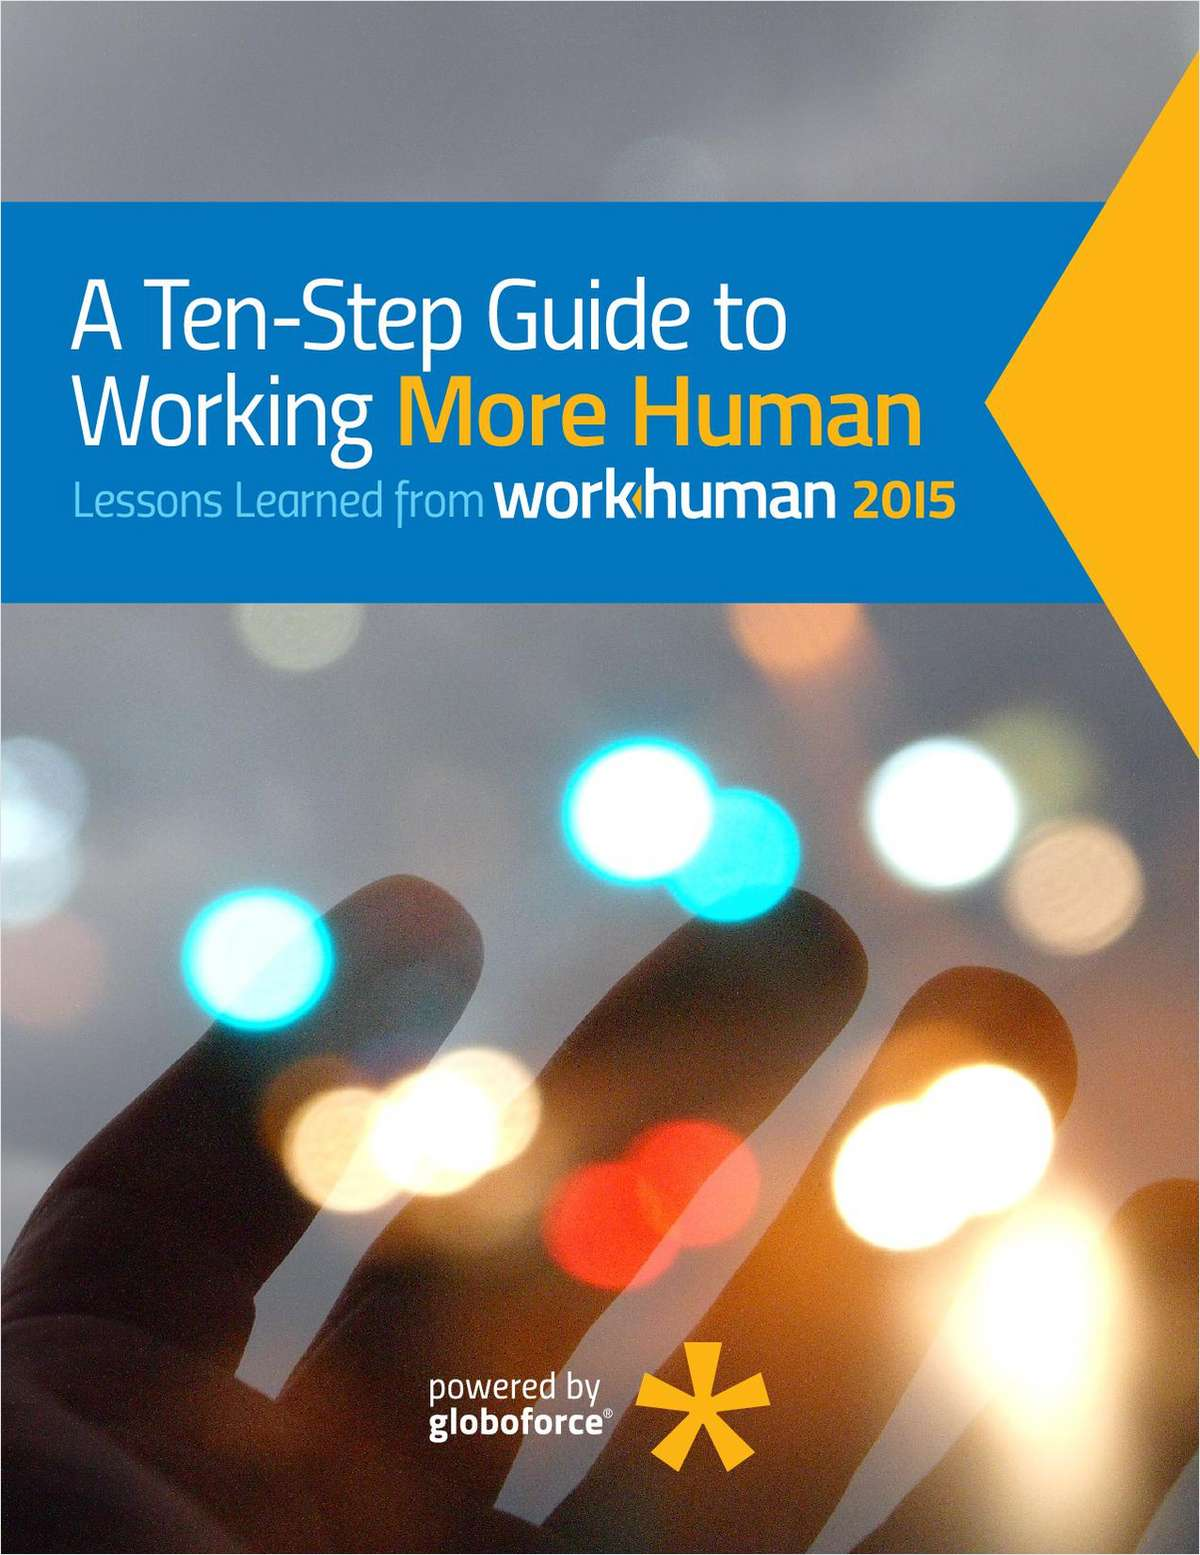 http://magz.tradepub.com/free-offer/a-ten-step-guide-to-working-more-human/w_glob48?sr=hicat&_t=hicat:1209